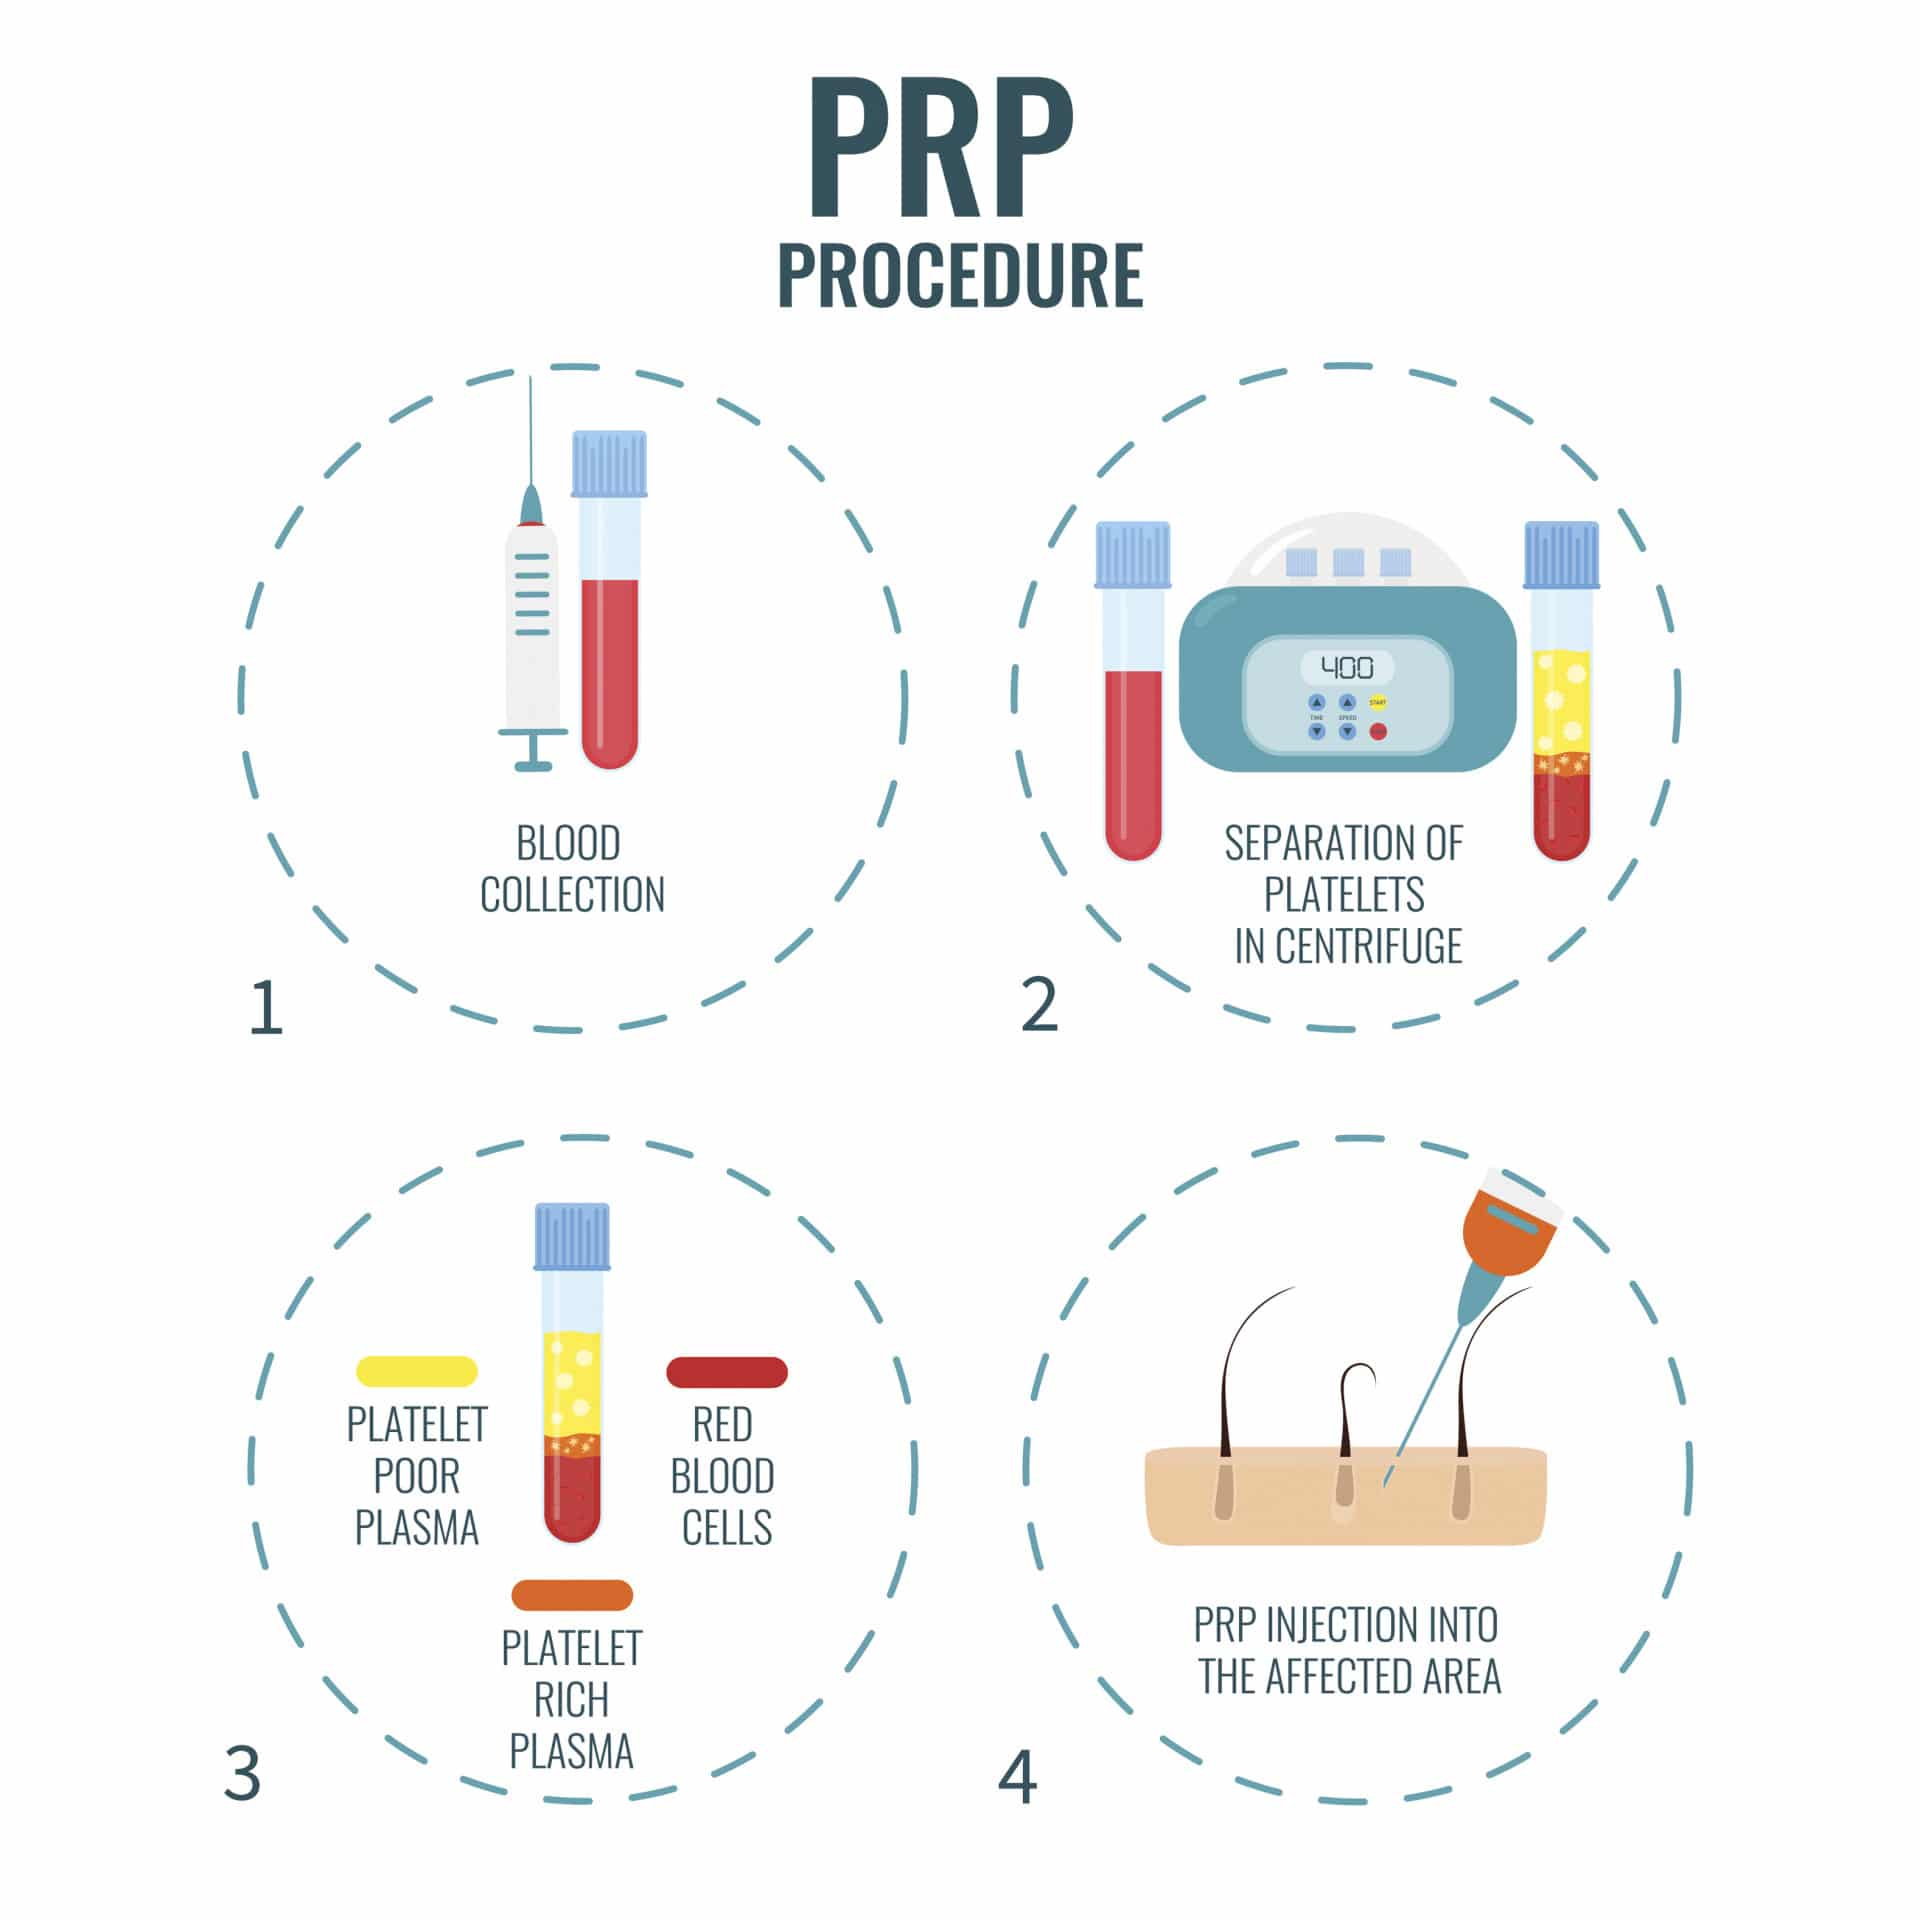 PRP_Procedure_Image